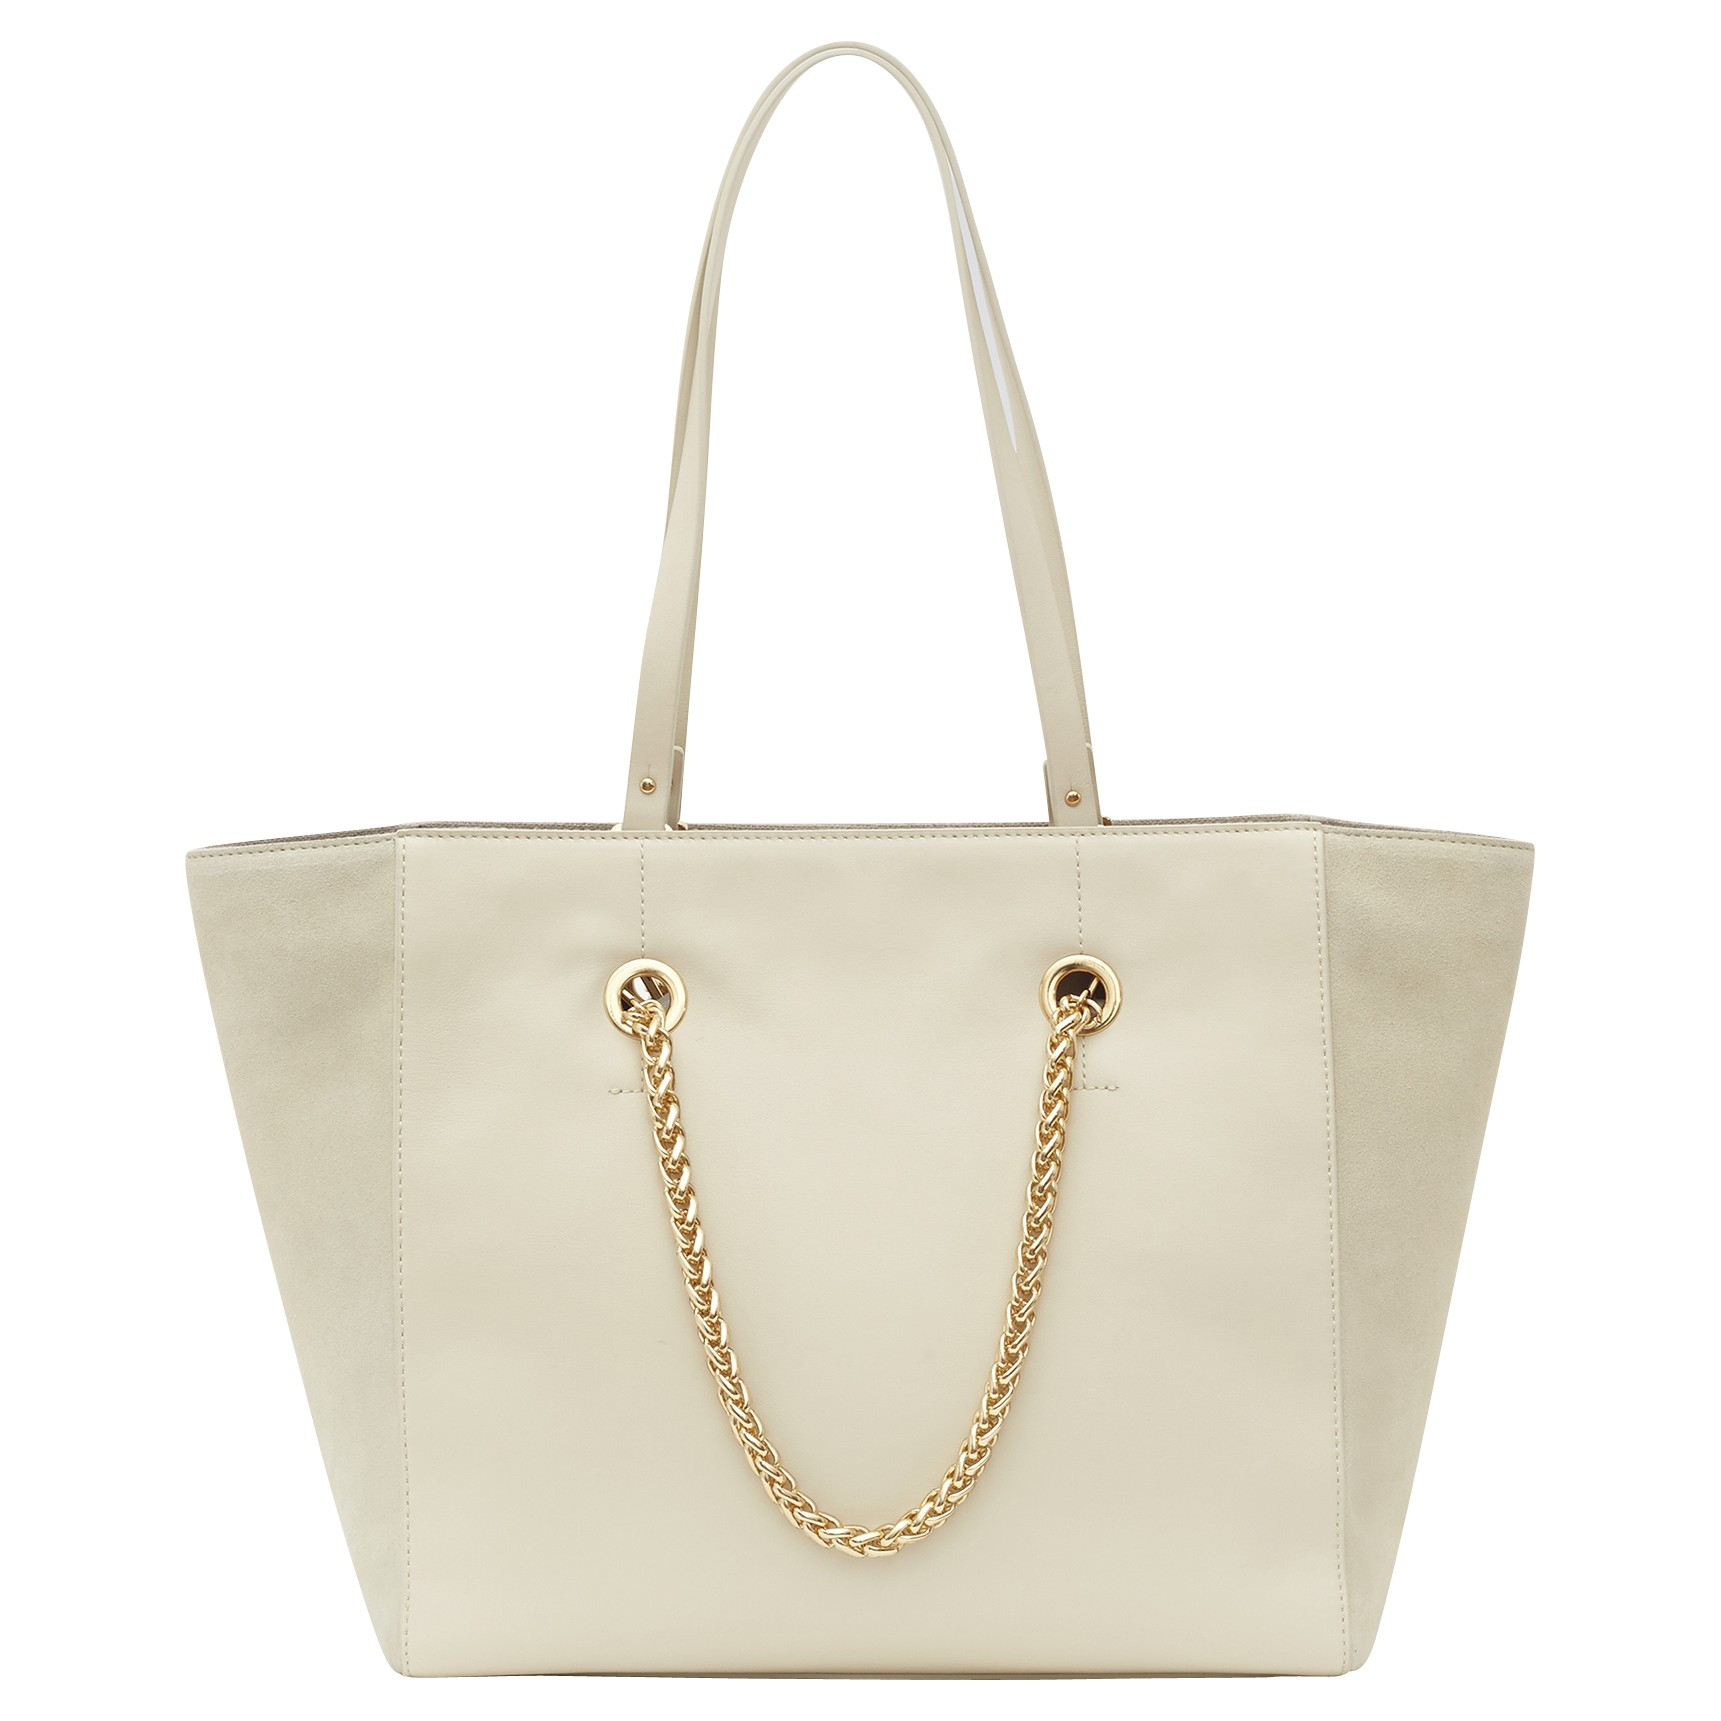 Reiss Cherry Suede And Leather Tote Bag in Beige (CREAM) | Lyst